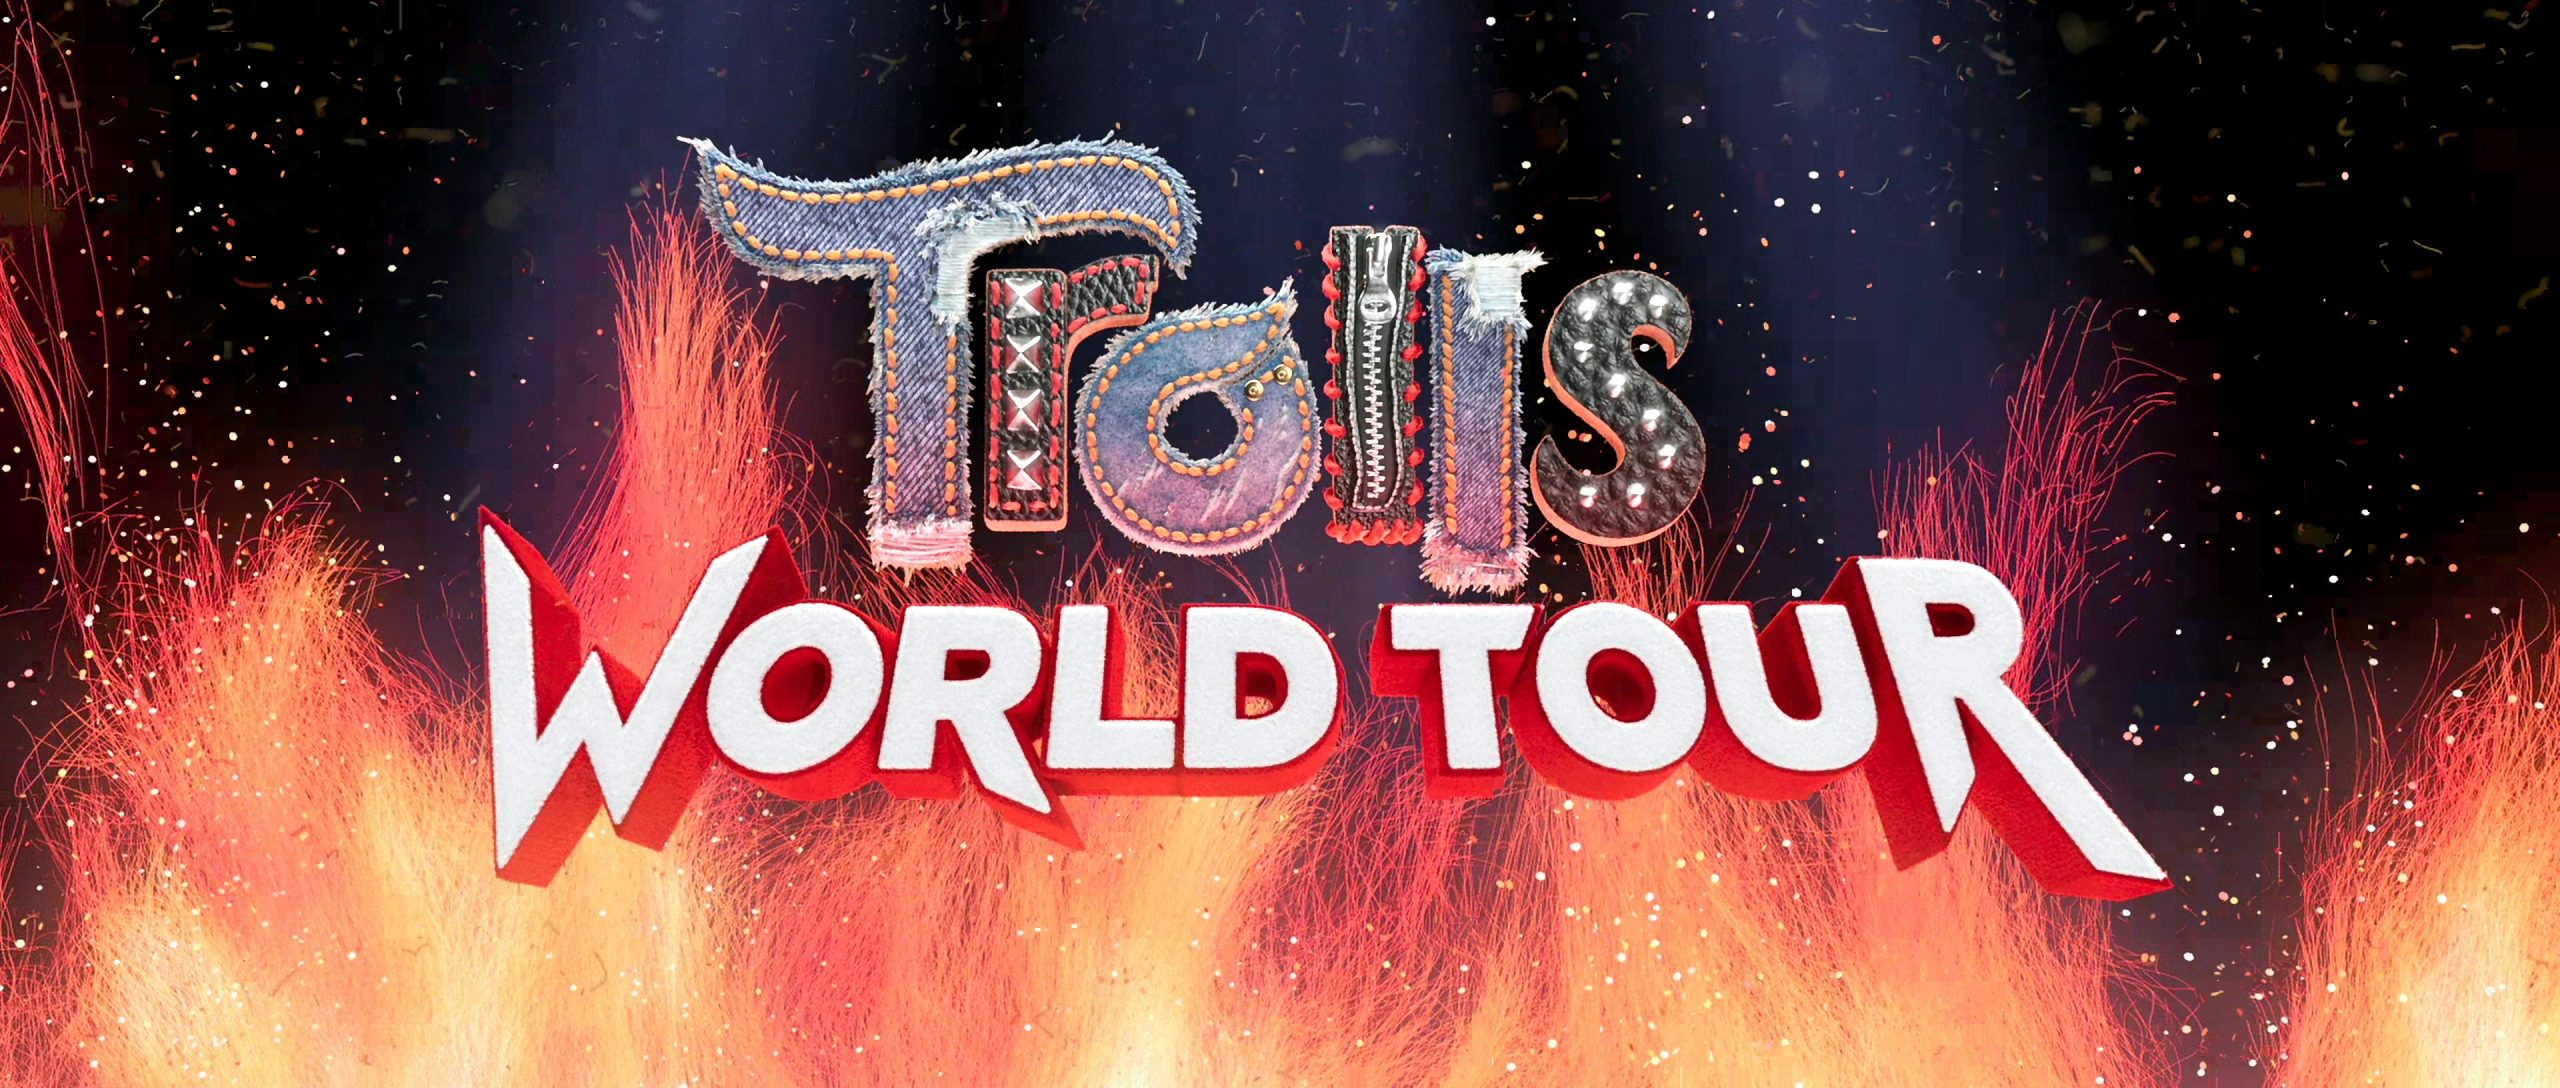 Trolls World Tour (2020) [4K]